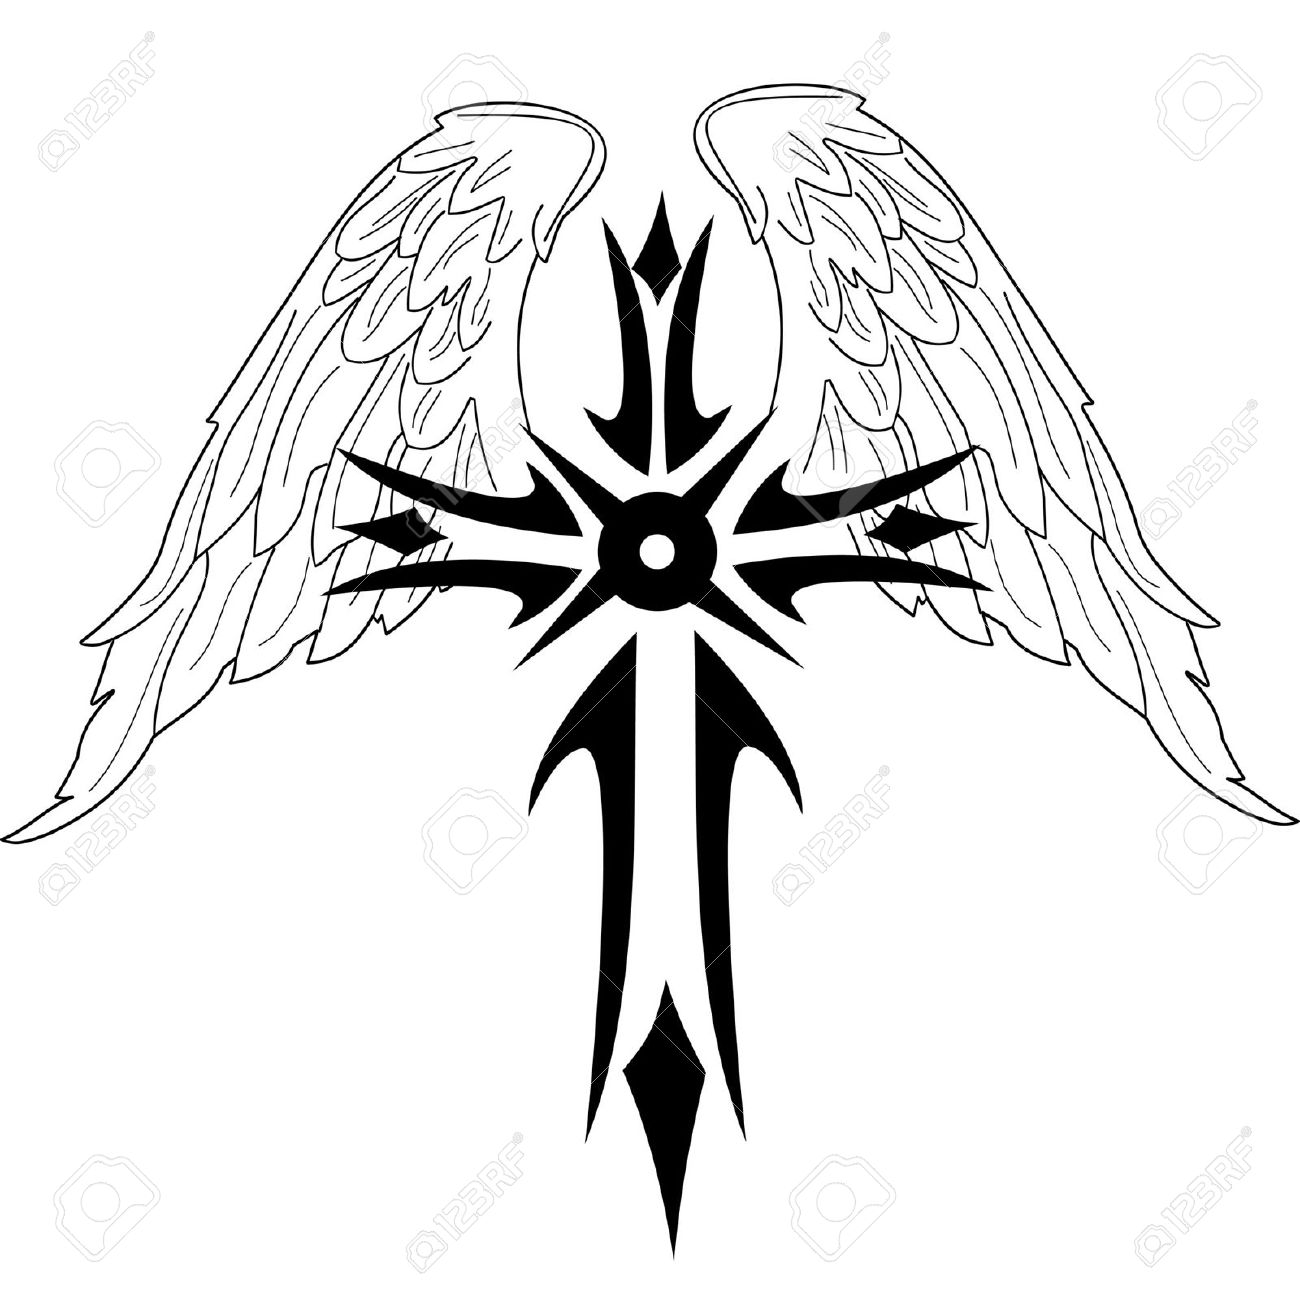 Black Cross With Wings On White Background Royalty Free Cliparts